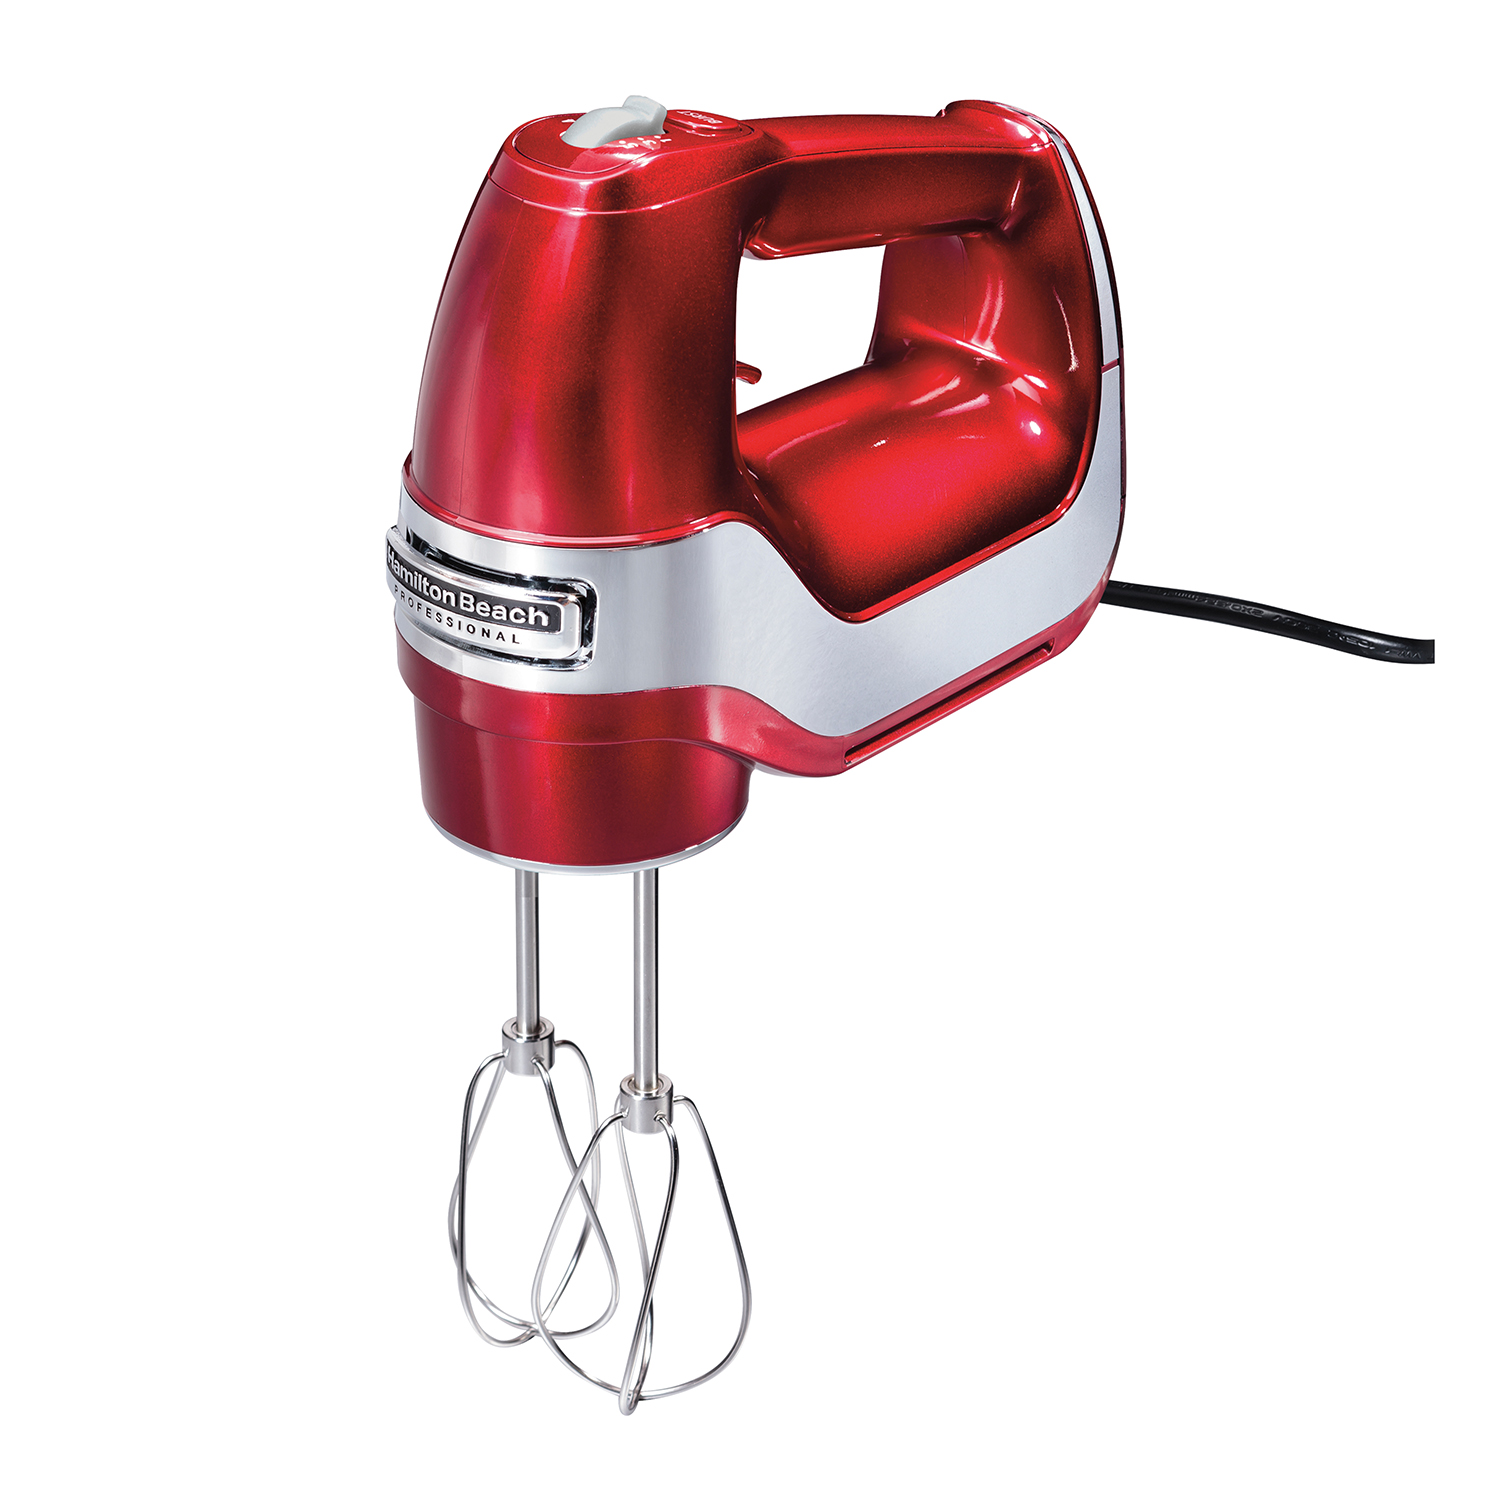 Hamilton Beach® Professional Hand Mixer 5 Speed, Red (62653)